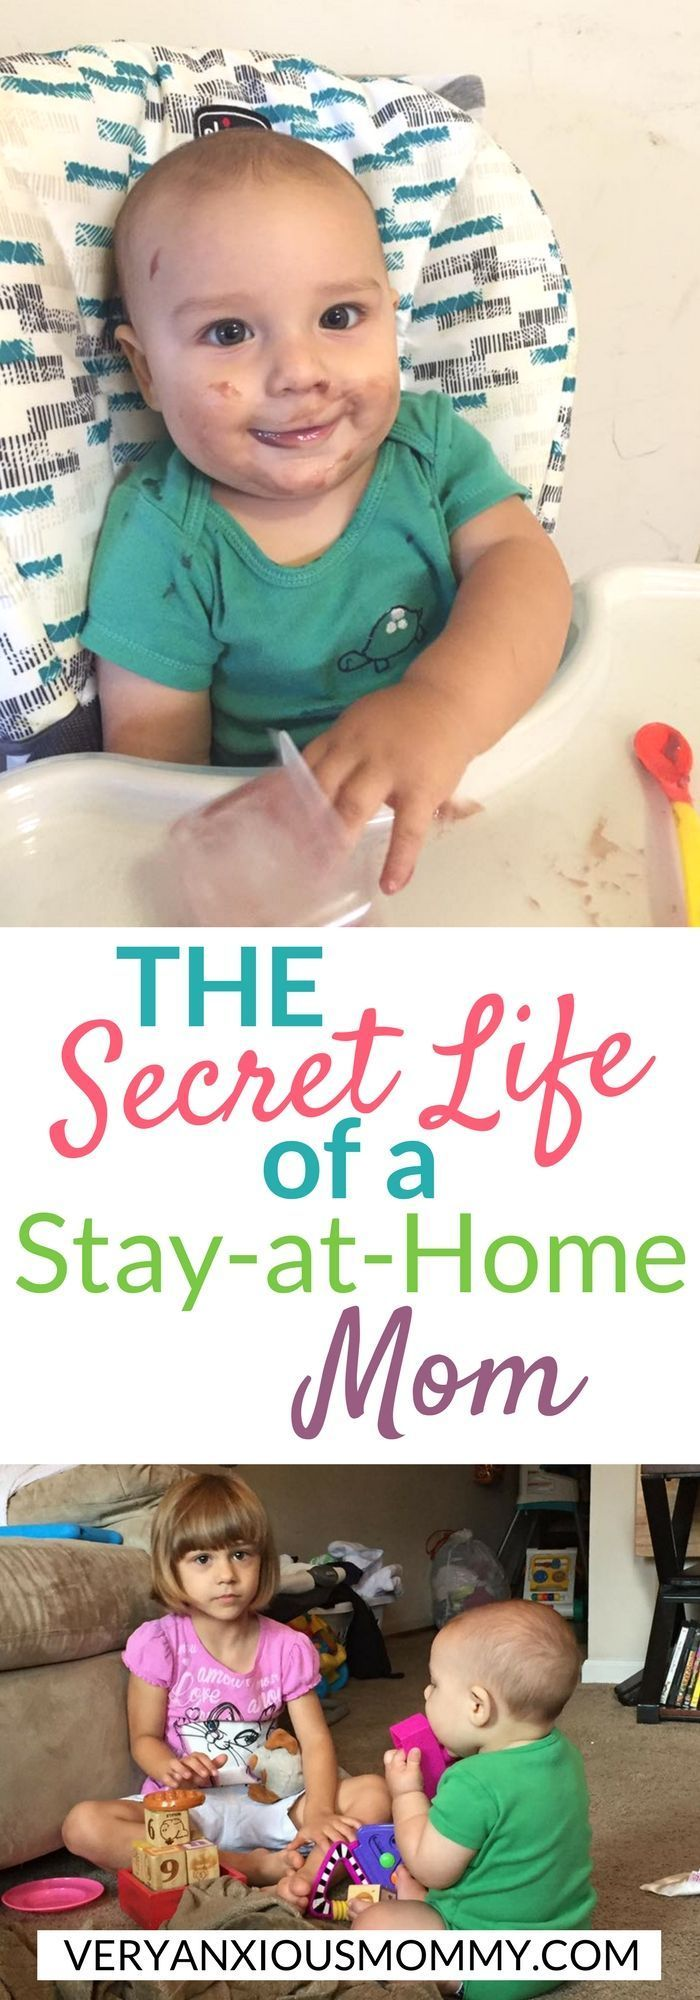 6 Things You Should Never Say to a Stay-at-Home-Mom   Stay